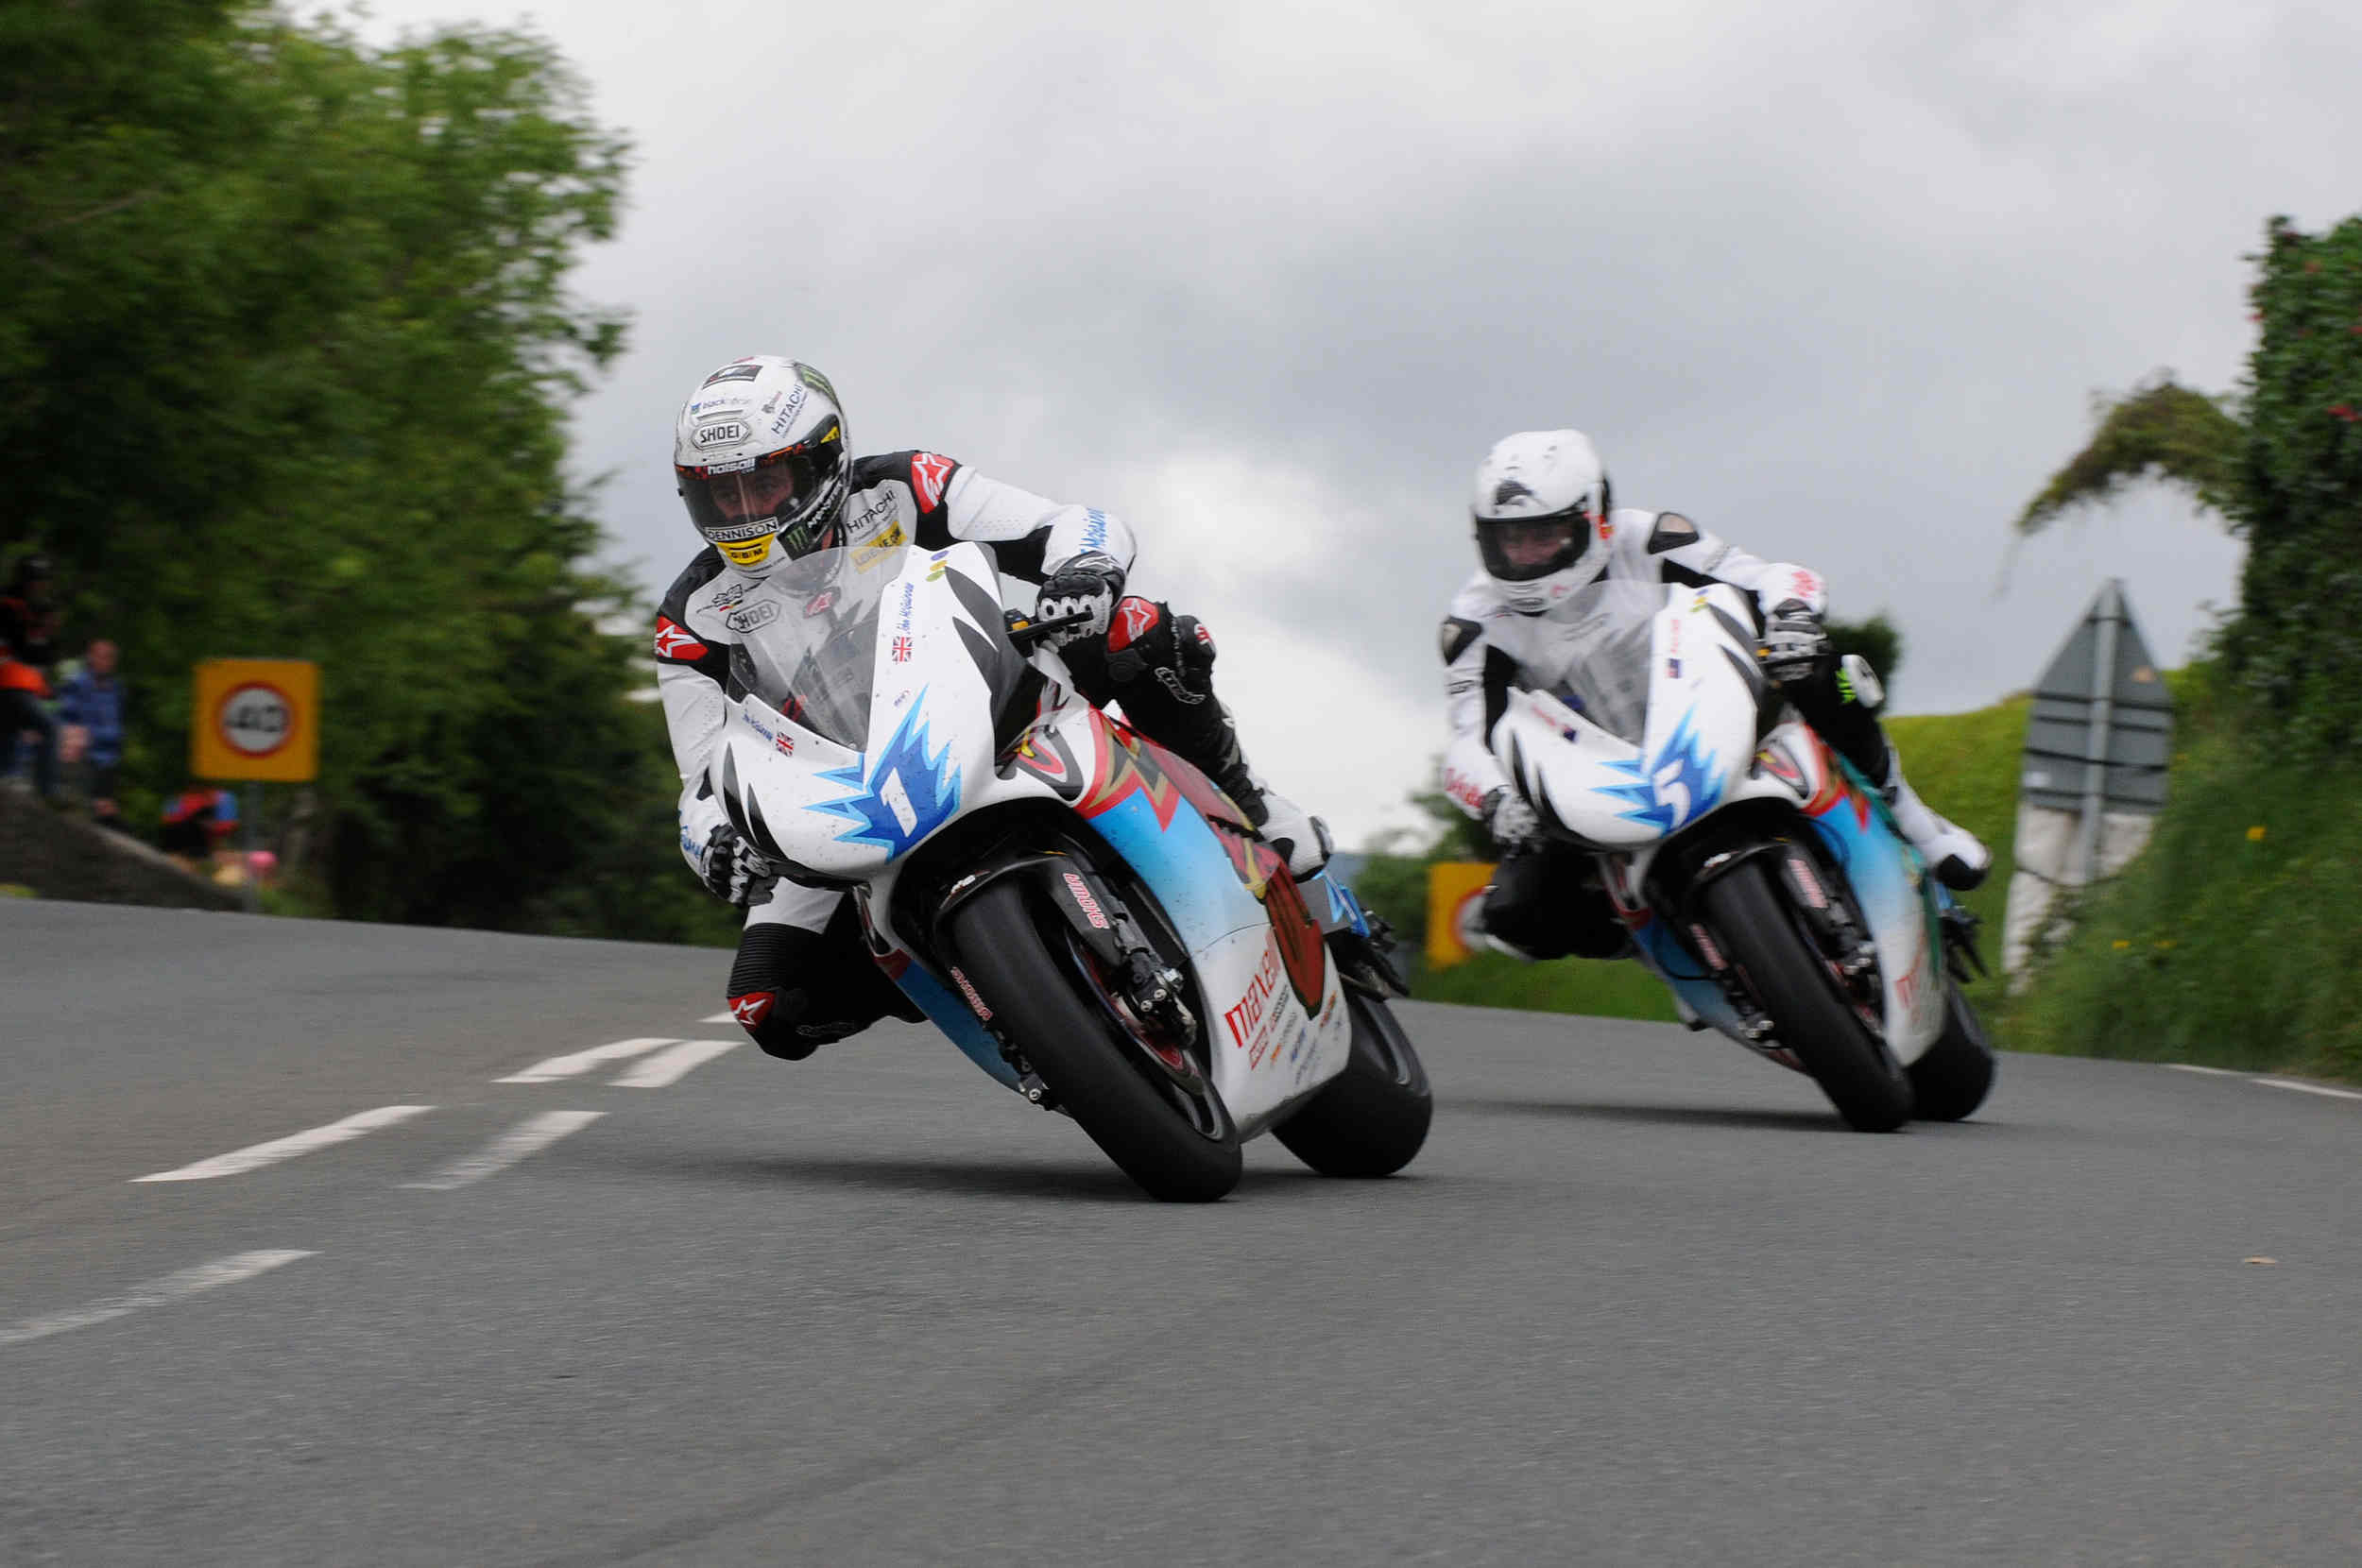 TT Zero practice 2014 - John McGuinness and Bruce Anstey on Mugen Shinden EV bikes